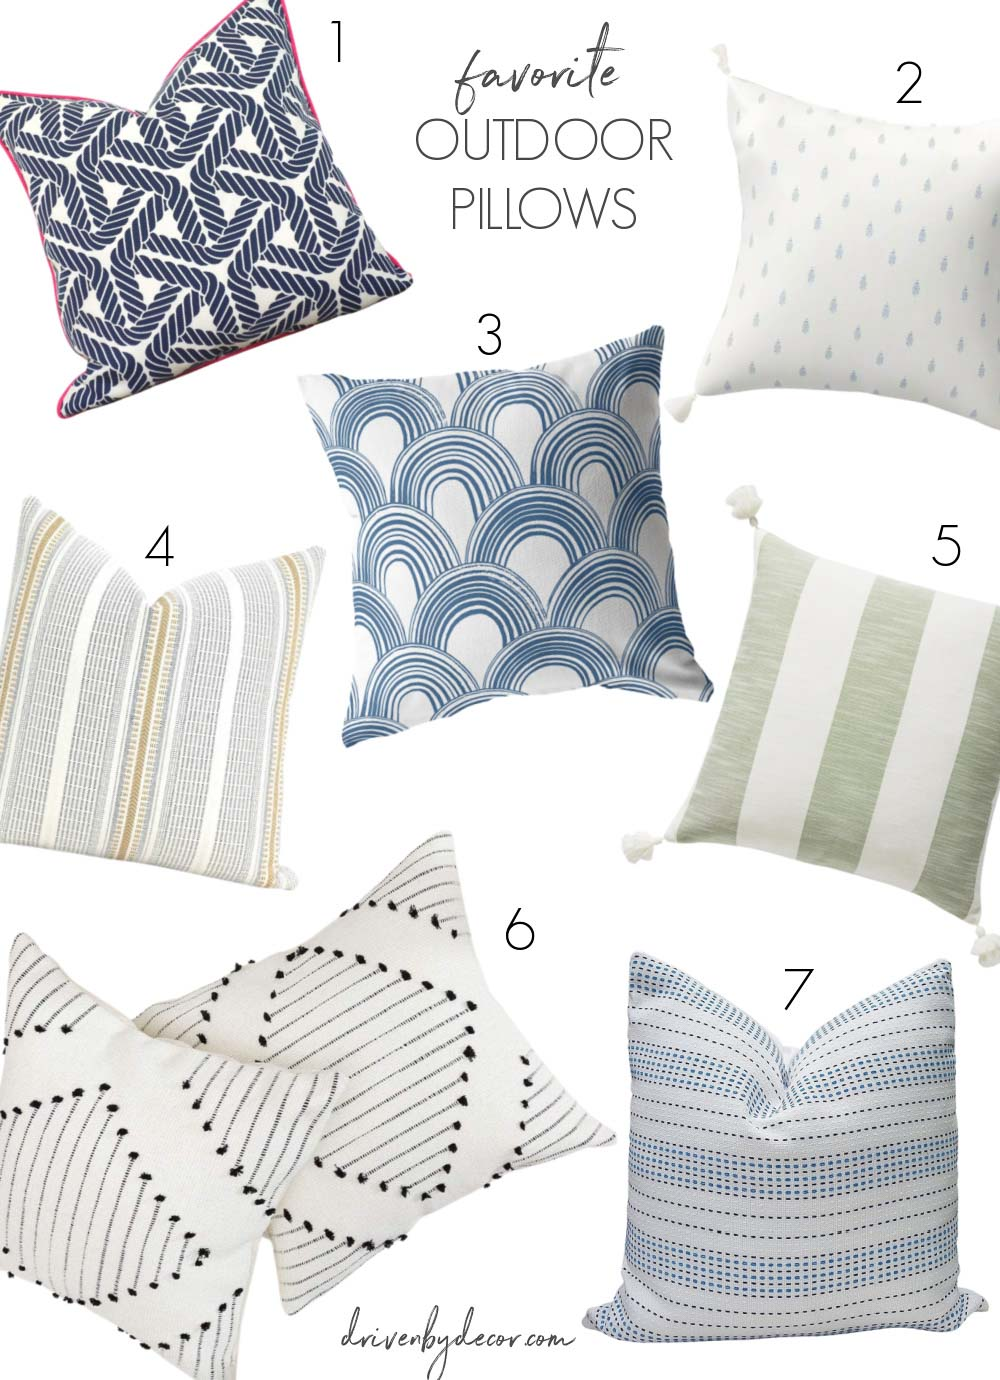 Love these outdoor pillow covers - a favorite outdoor decor idea!